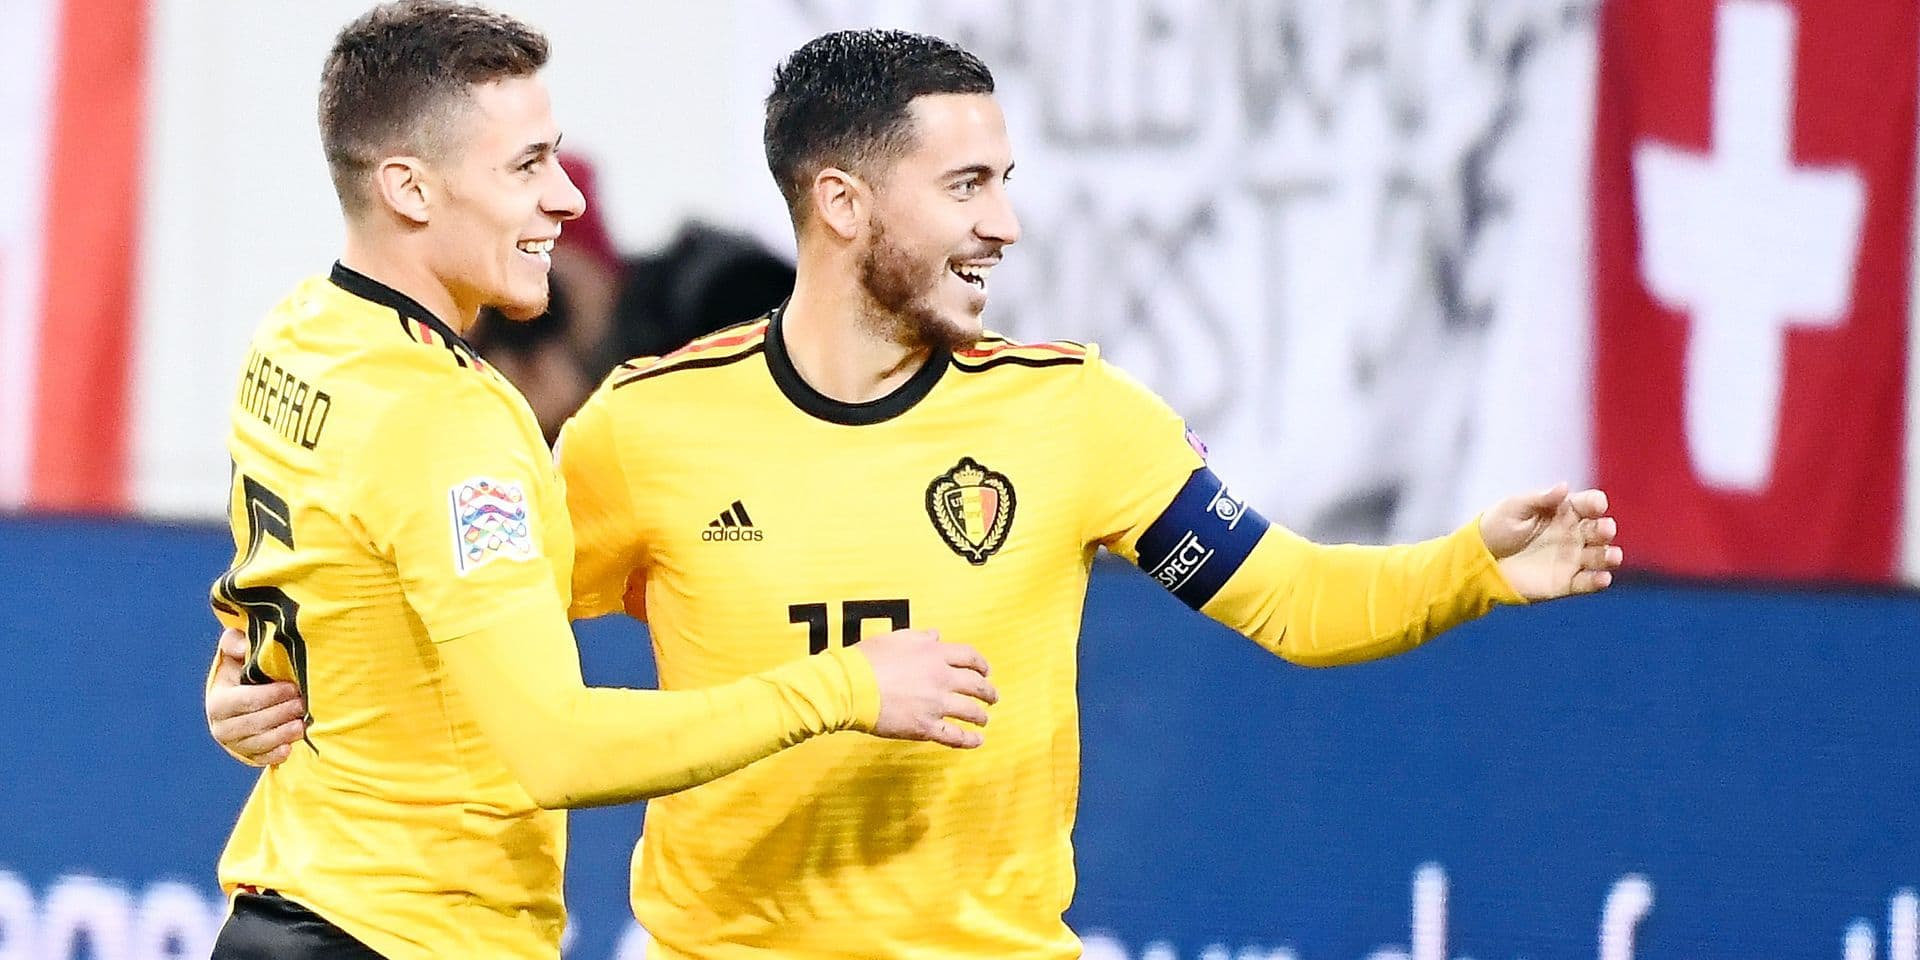 Belgium's Thorgan Hazard celebrates after the 0-1 goal with his brother Eden at a soccer game between Switzerland and Belgian national team the Red Devils in Luzern, Switzerland, Sunday 18 November 2018, the last game in group 2 of the UEFA Nations League A competition. BELGA PHOTO DIRK WAEM